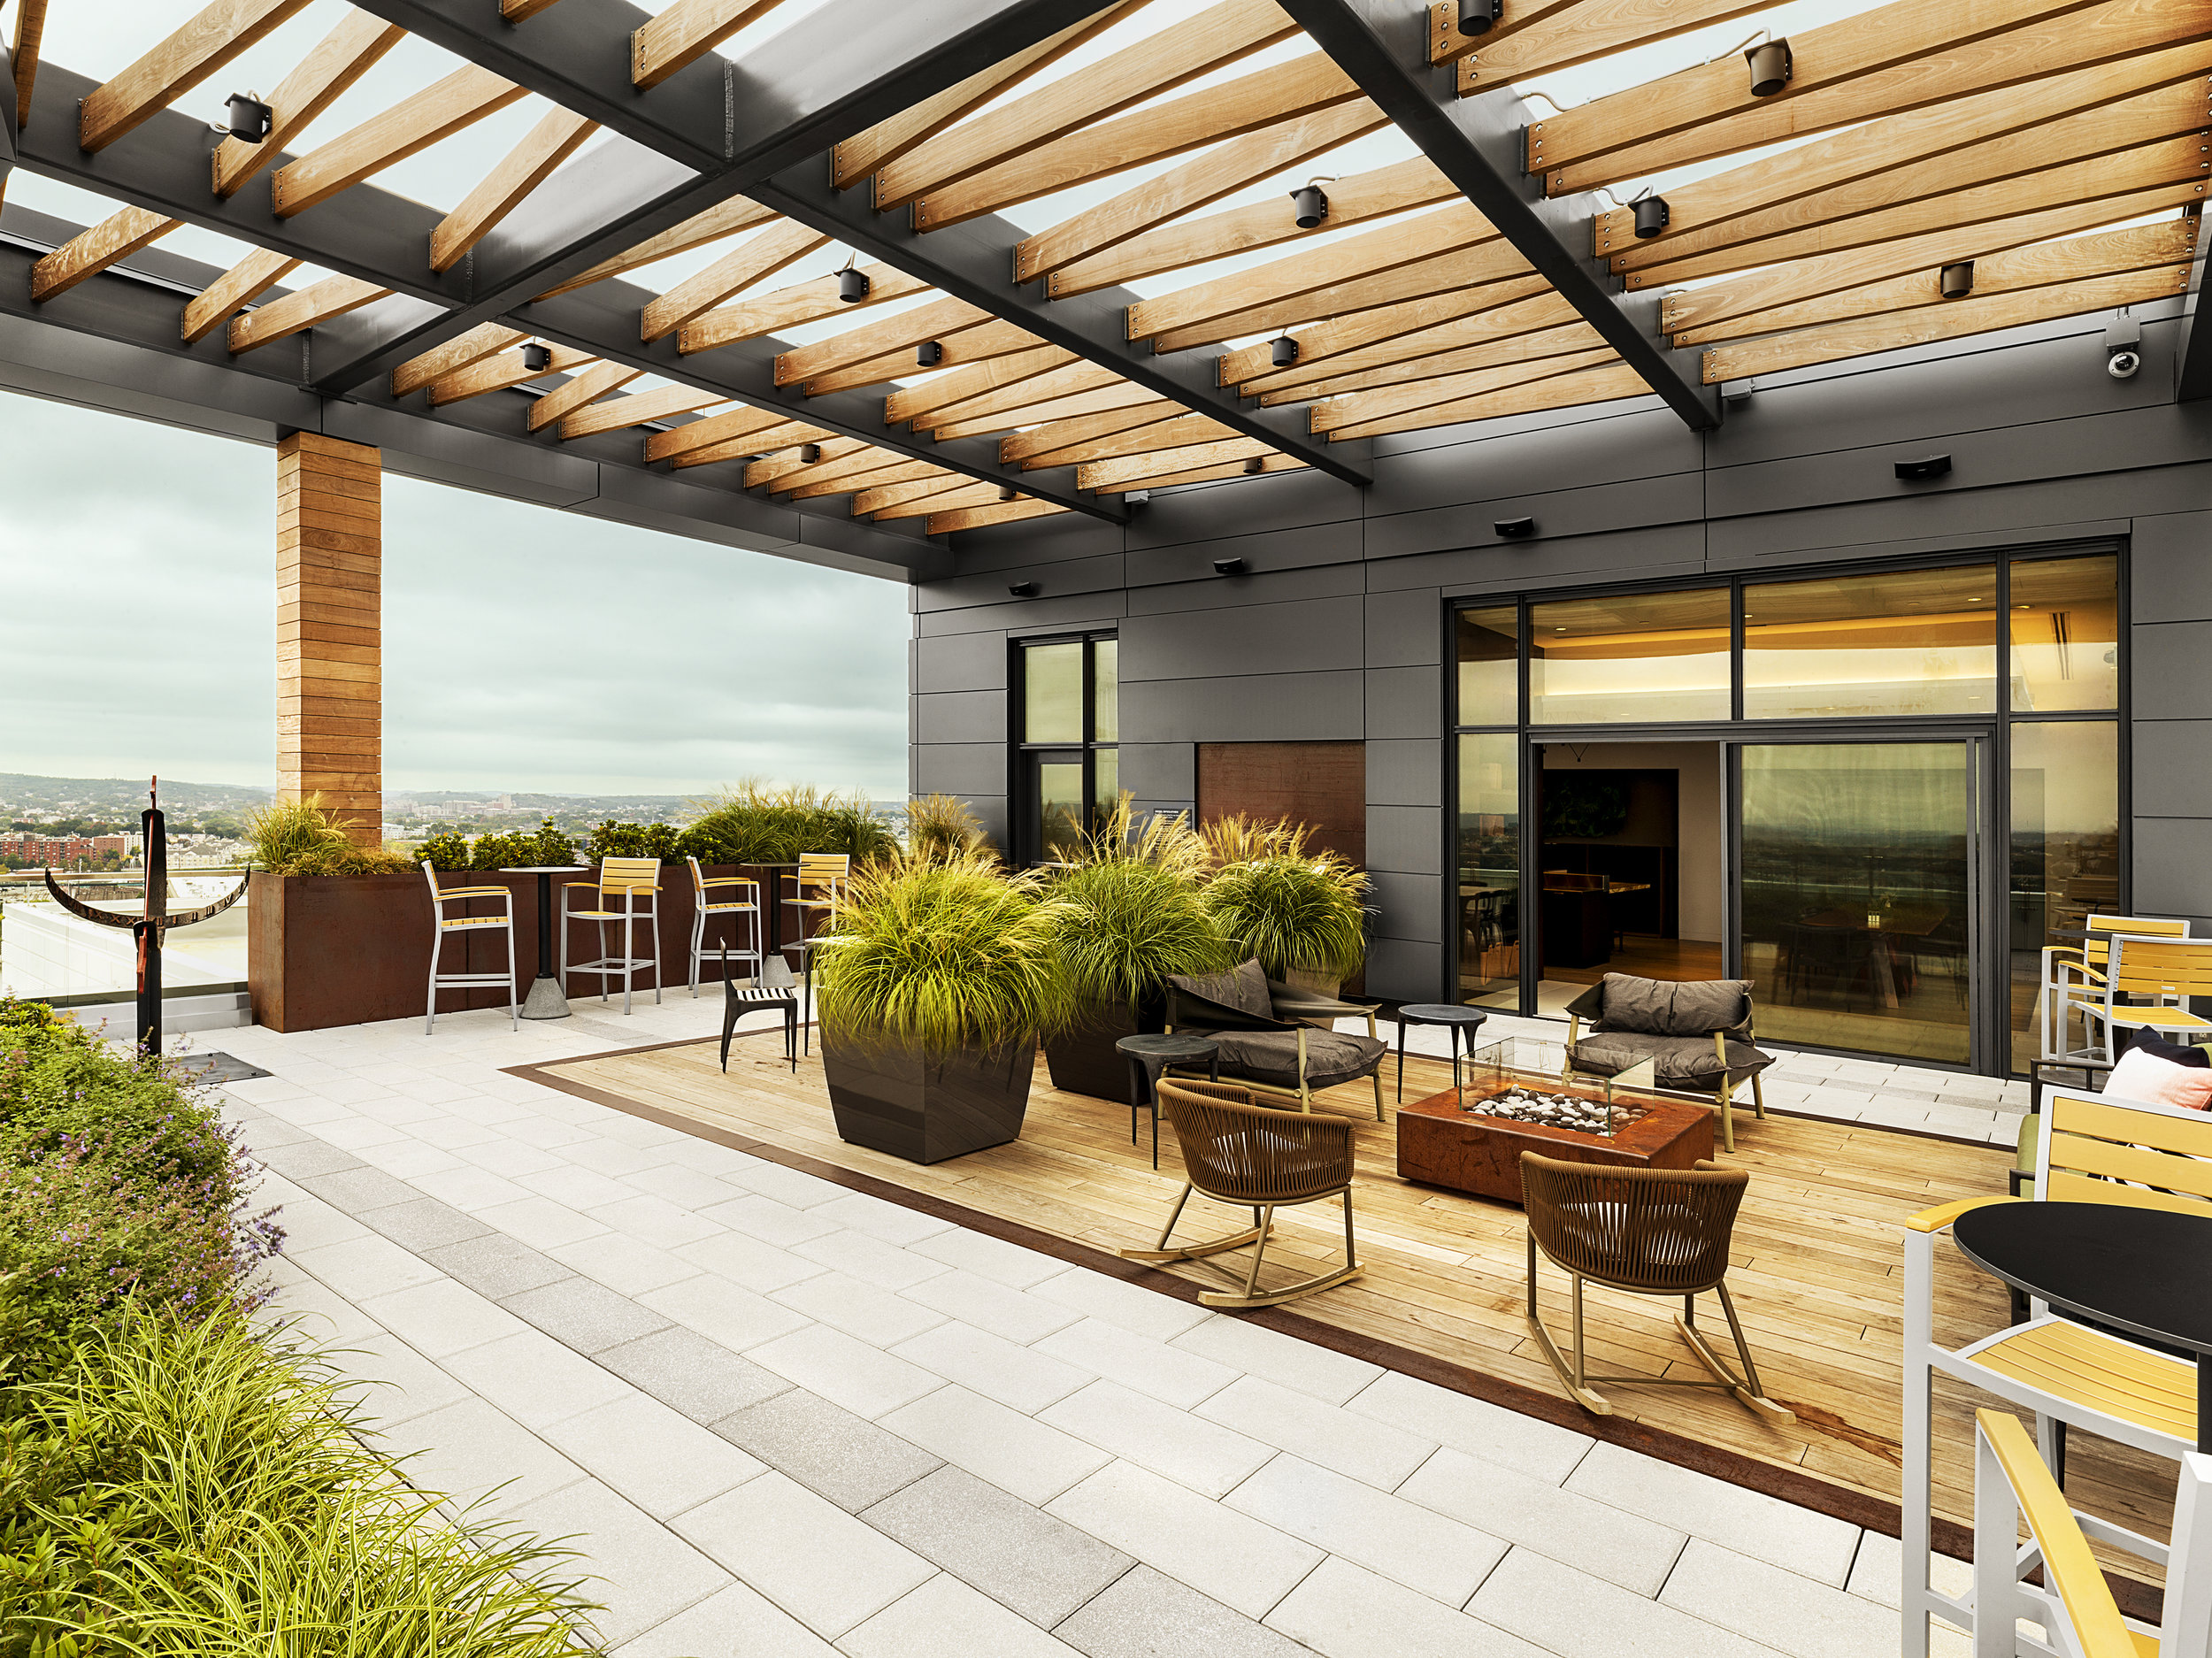 recover-green-roofs-patrick-rogers-photography-montaje-courtyard-skydeck-11-2018-1.jpg